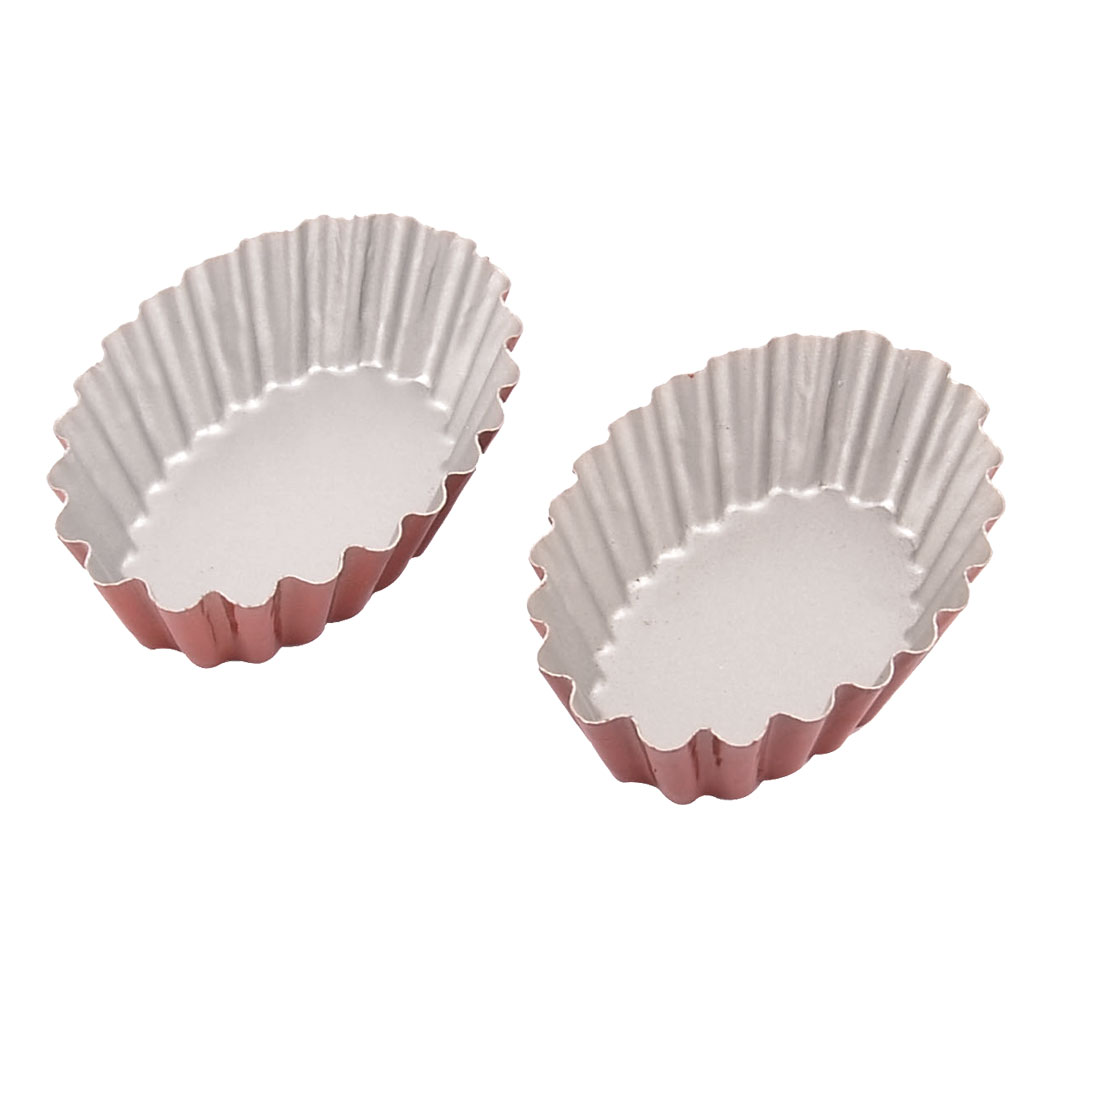 Oval Shaped Egg Tart Cupcake Cake Cookie Lined Baking Mold Tin 2pcs